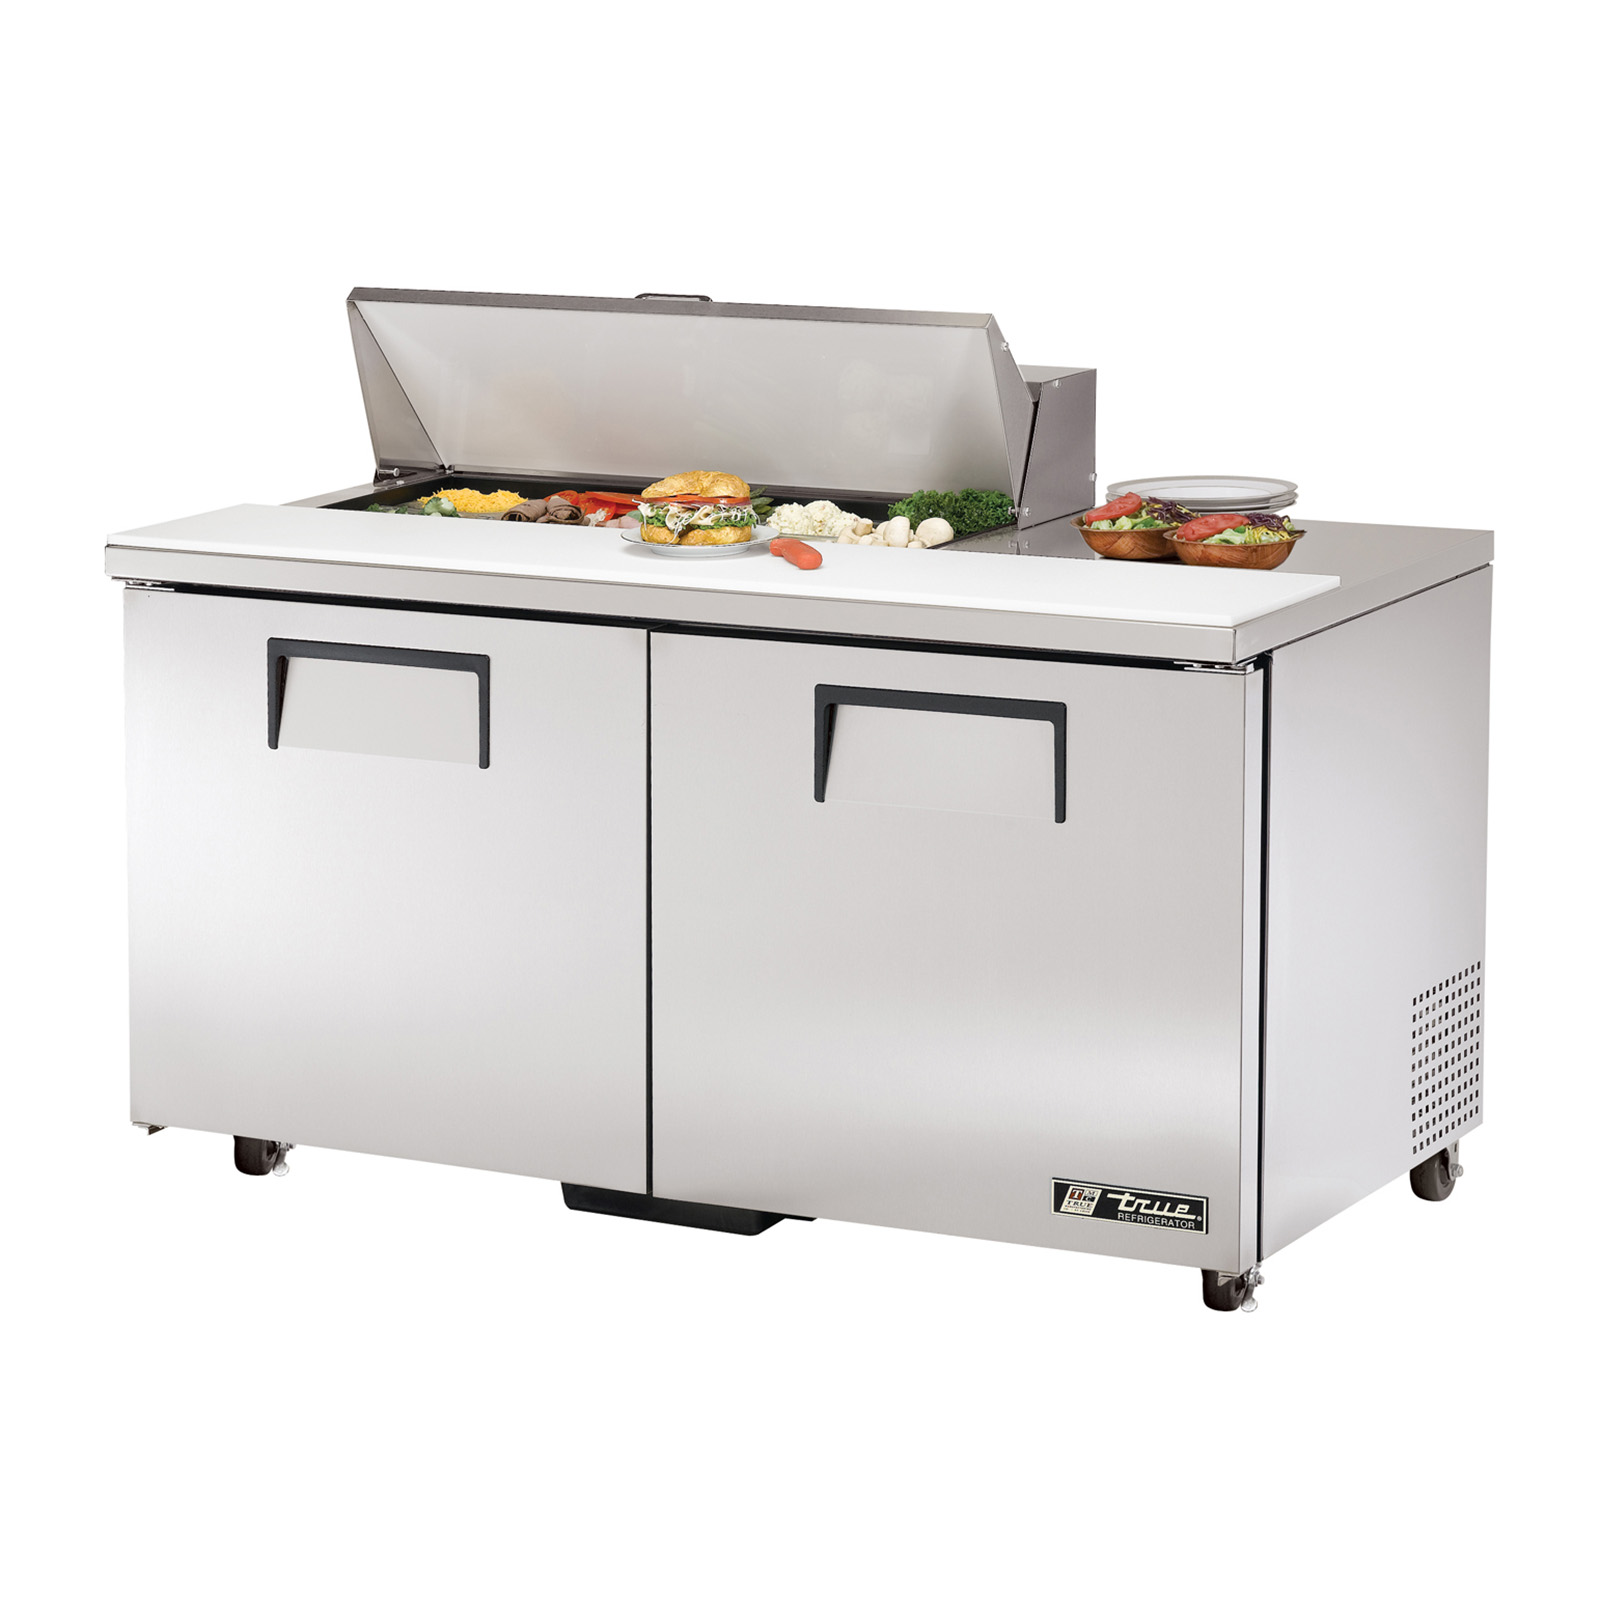 TSSU-60-10-ADA True - ADA Compliant Sandwich/Salad Unit (10) 1/6 size (4